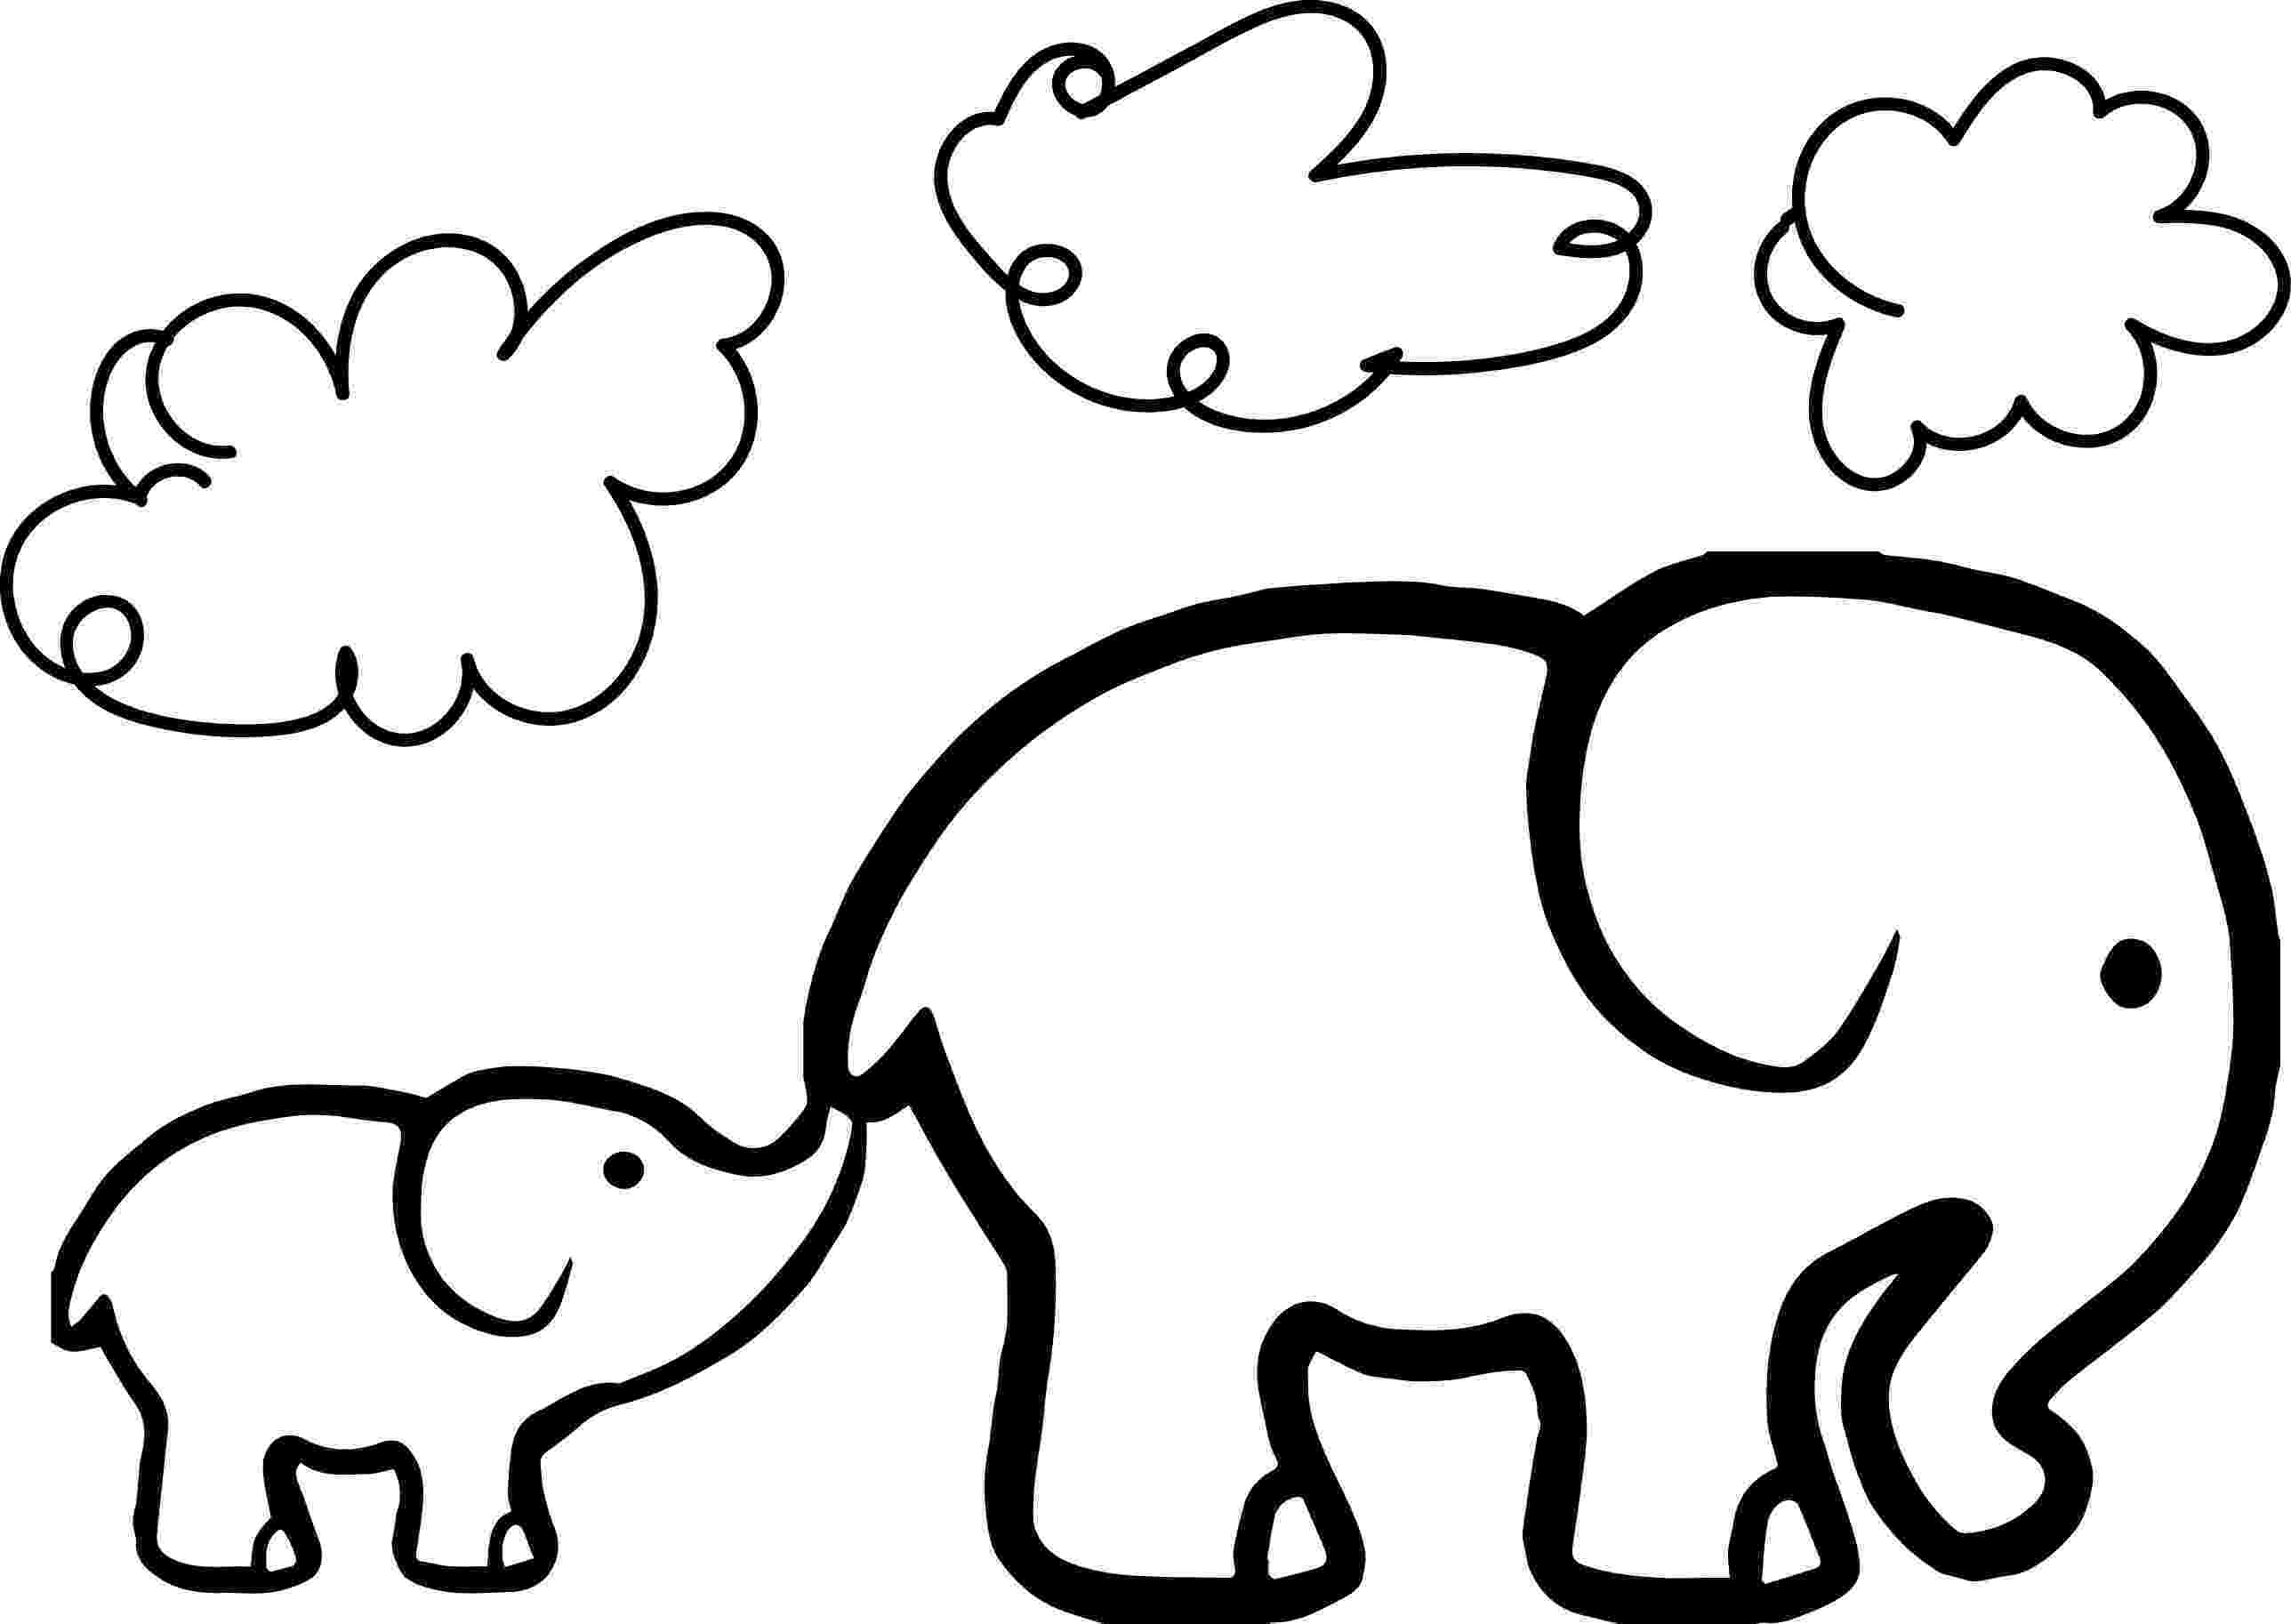 elephant pictures to color elephant coloring pages for kids printable for free color to elephant pictures